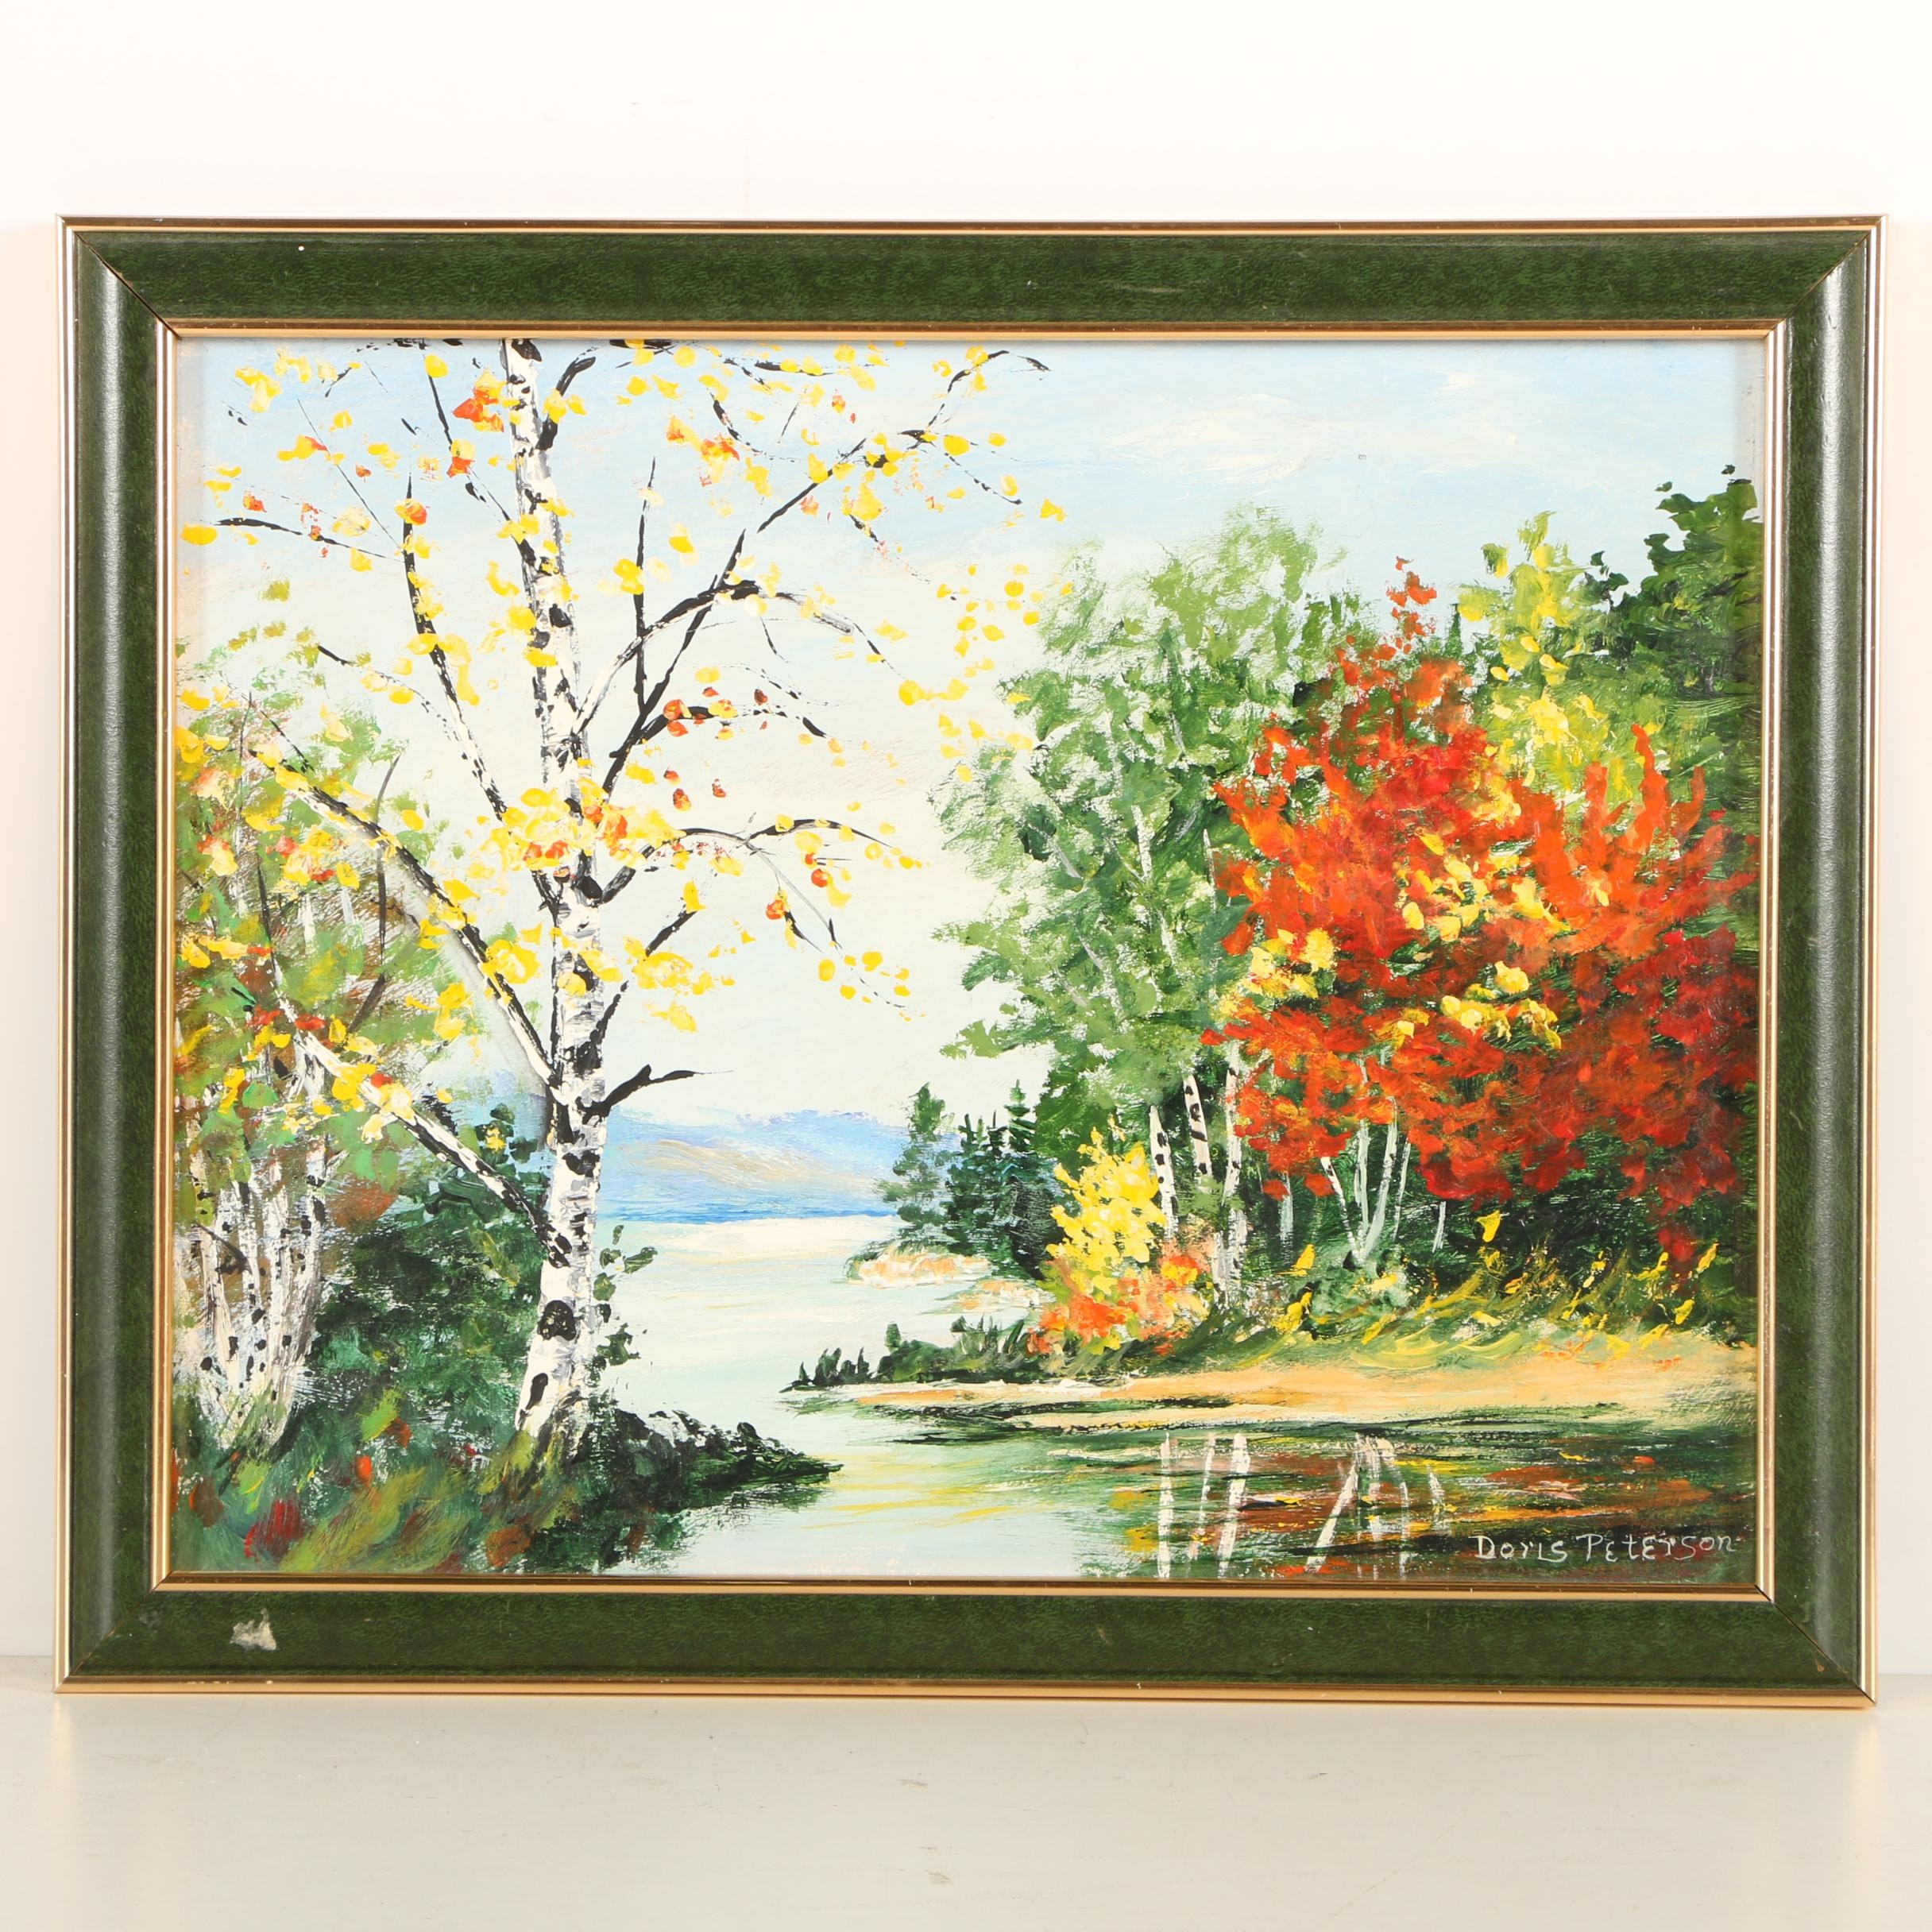 Doris Peterson Oil Painting of a Landscape